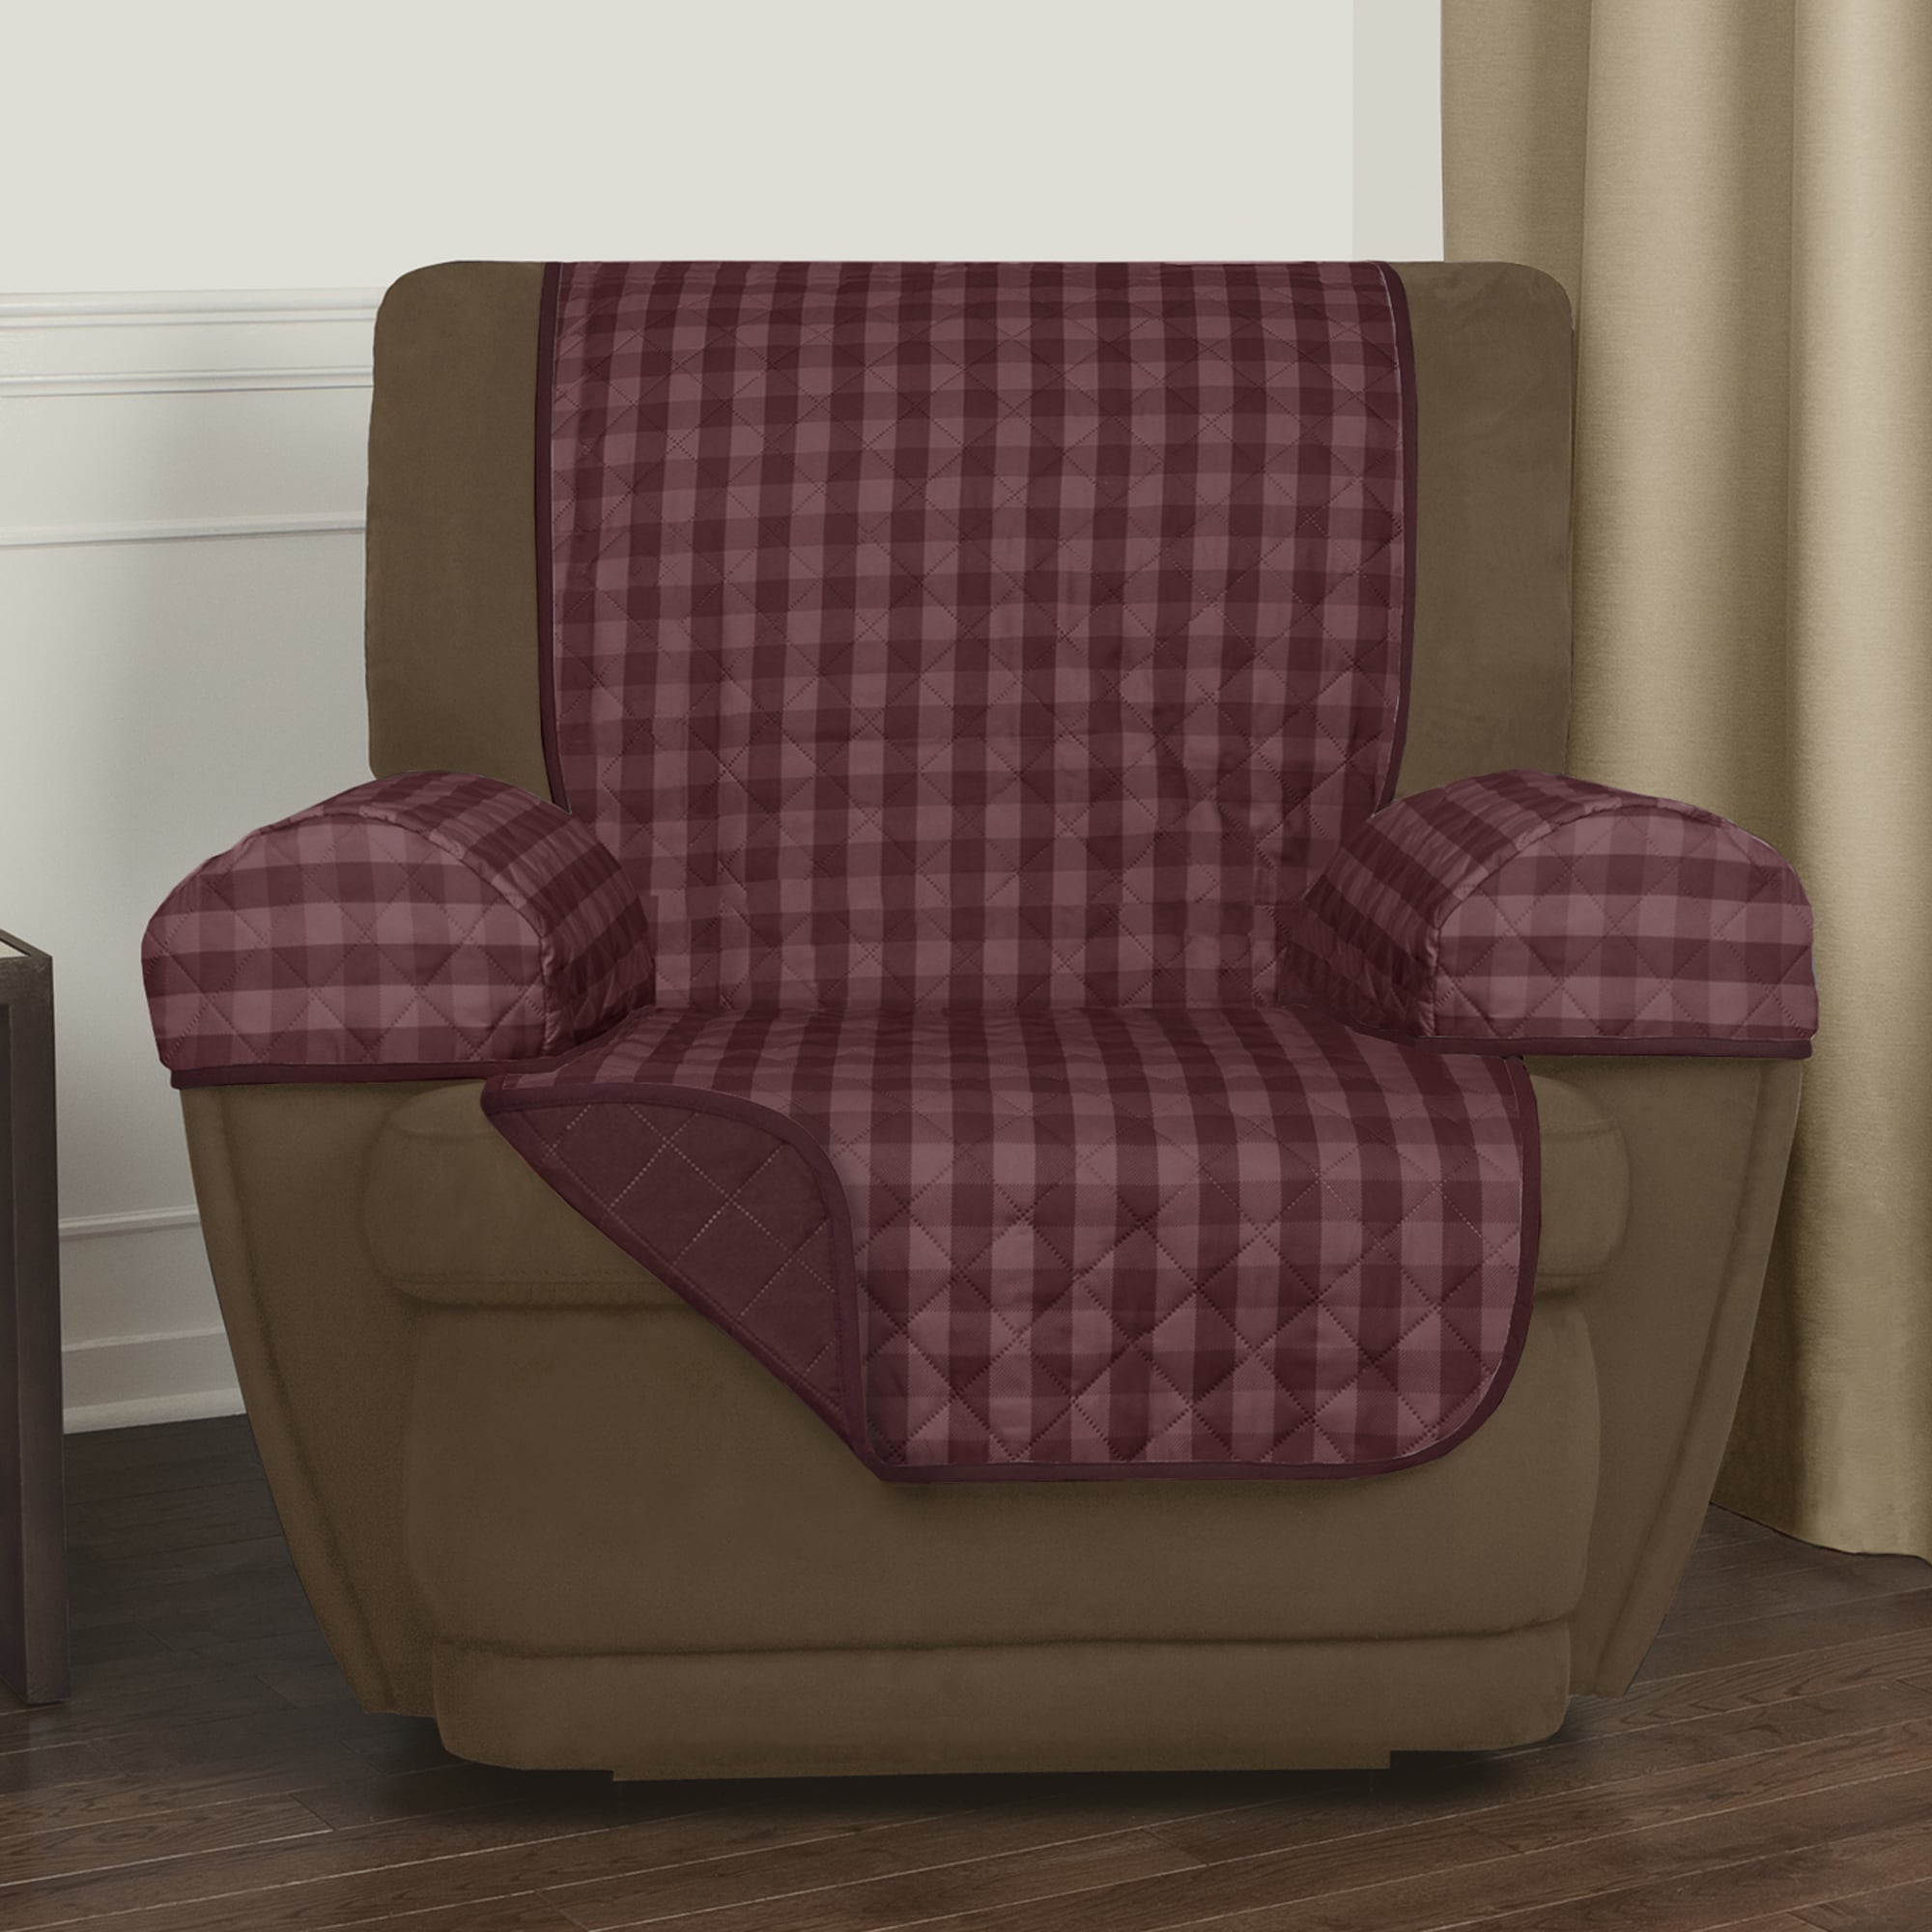 Maytex Reversible Buffalo Check 3 Piece Recliner Furniture Cover 25x69 Without Arms